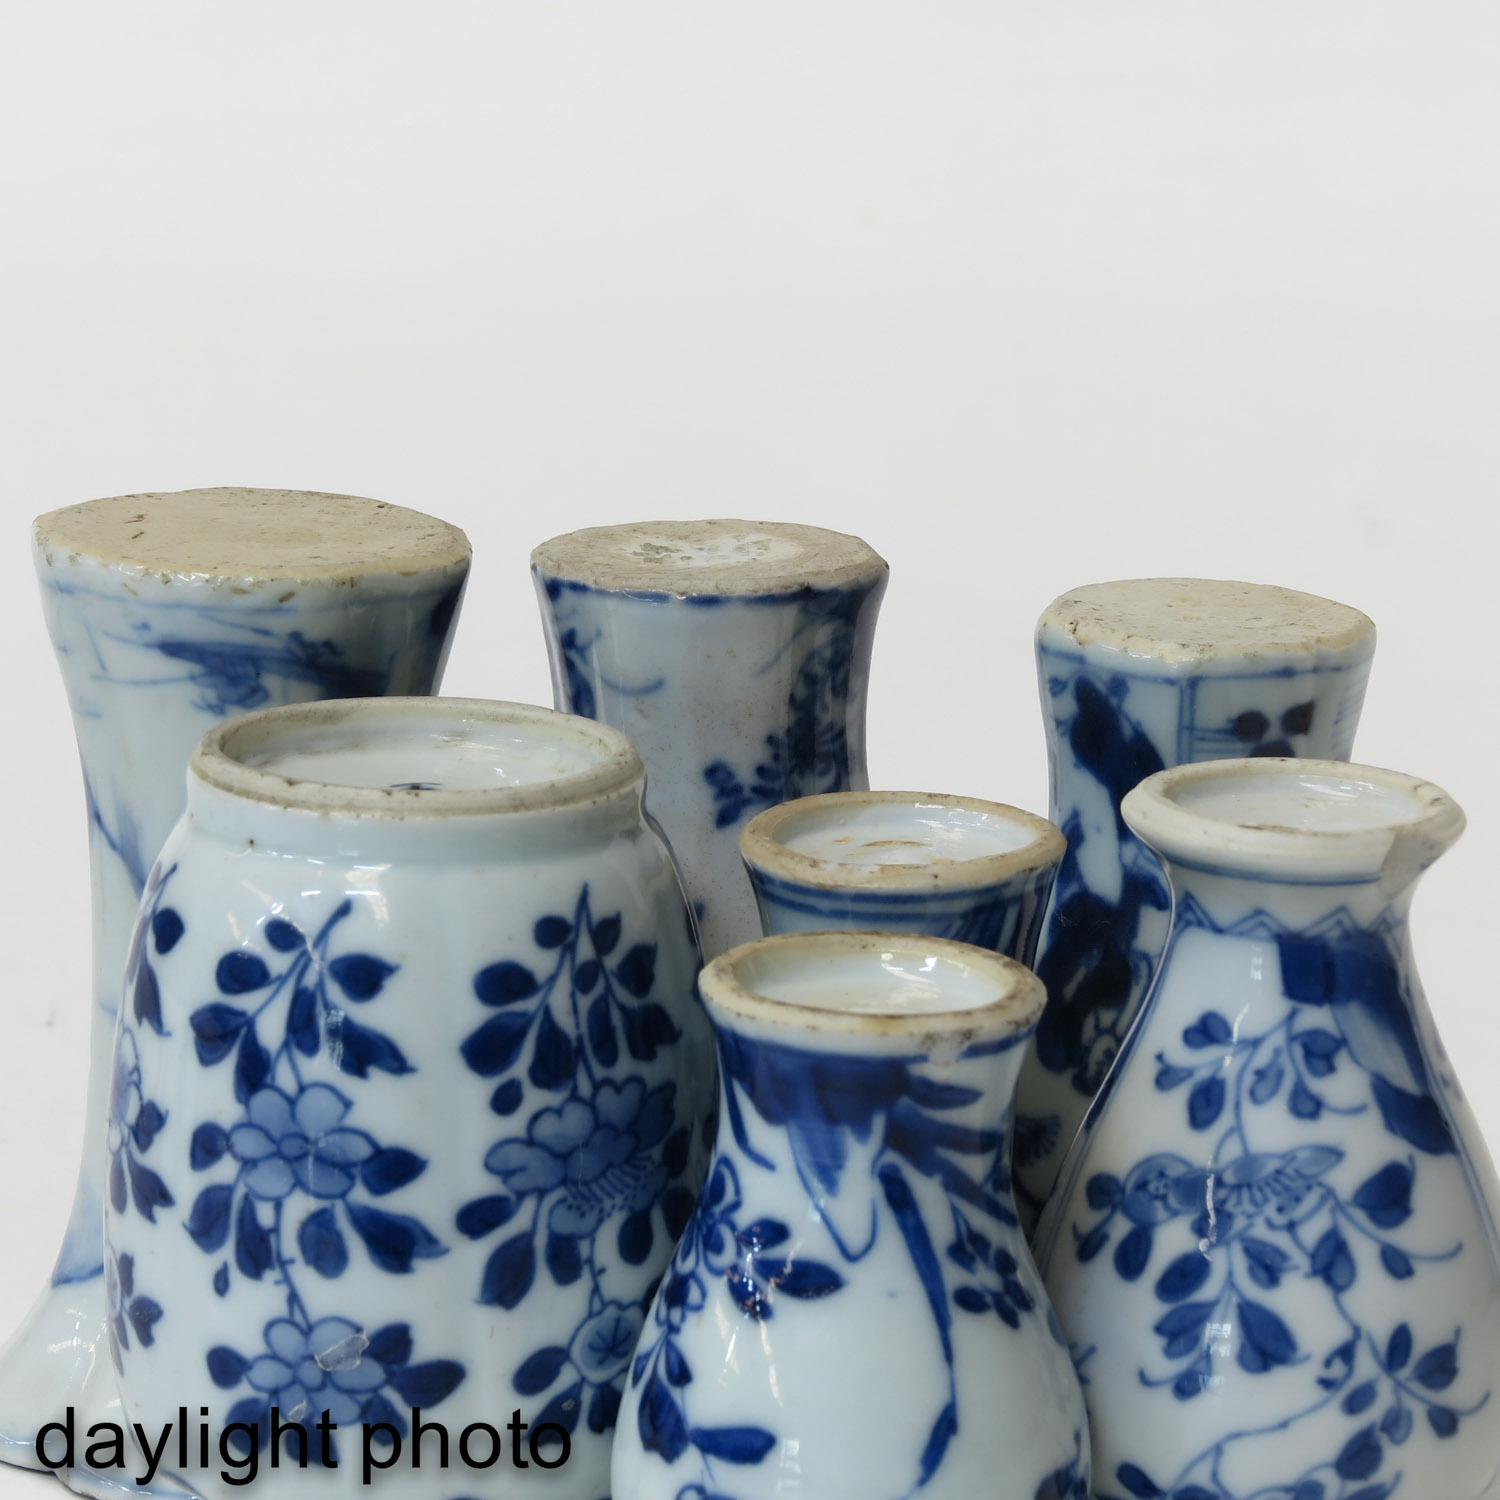 A Collection of 7 Miniature Vases - Image 8 of 9